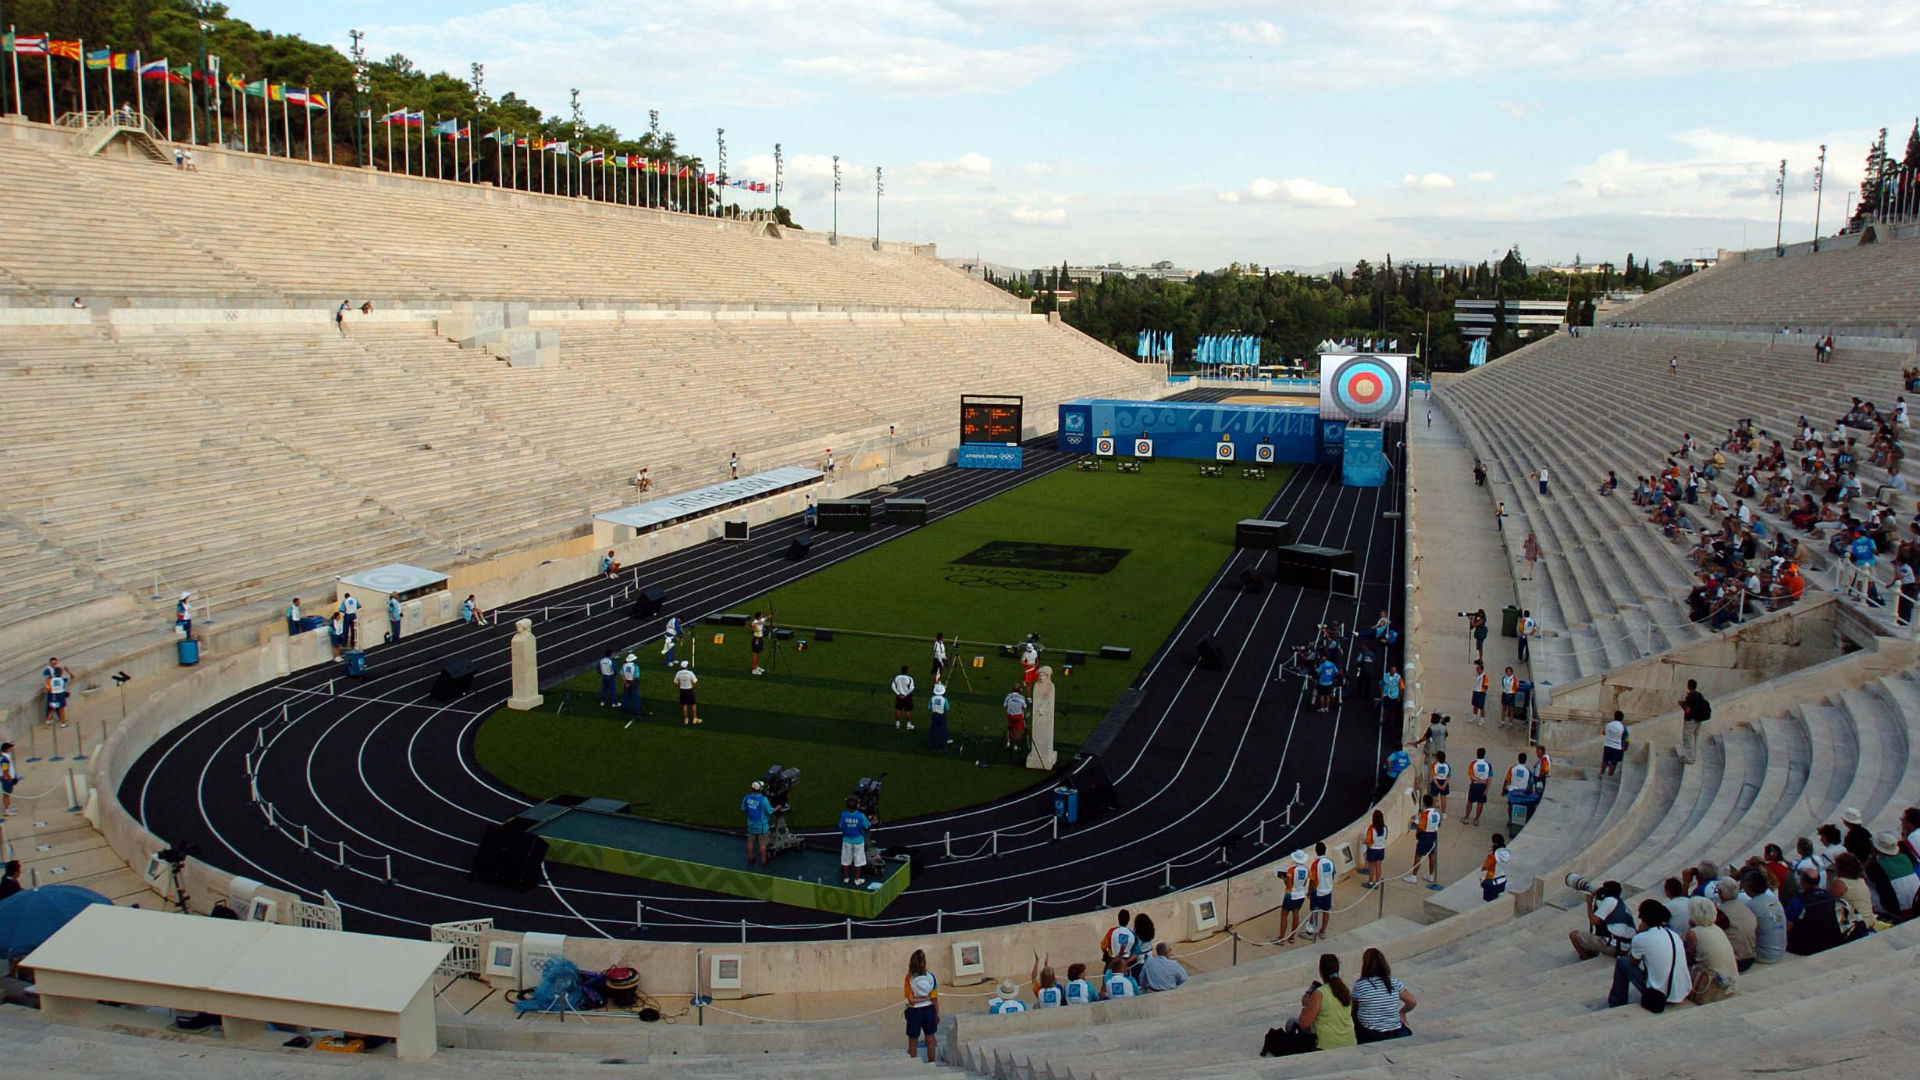 Panathinaiko Stadium, the site of the first modern Olympic Games in 1896